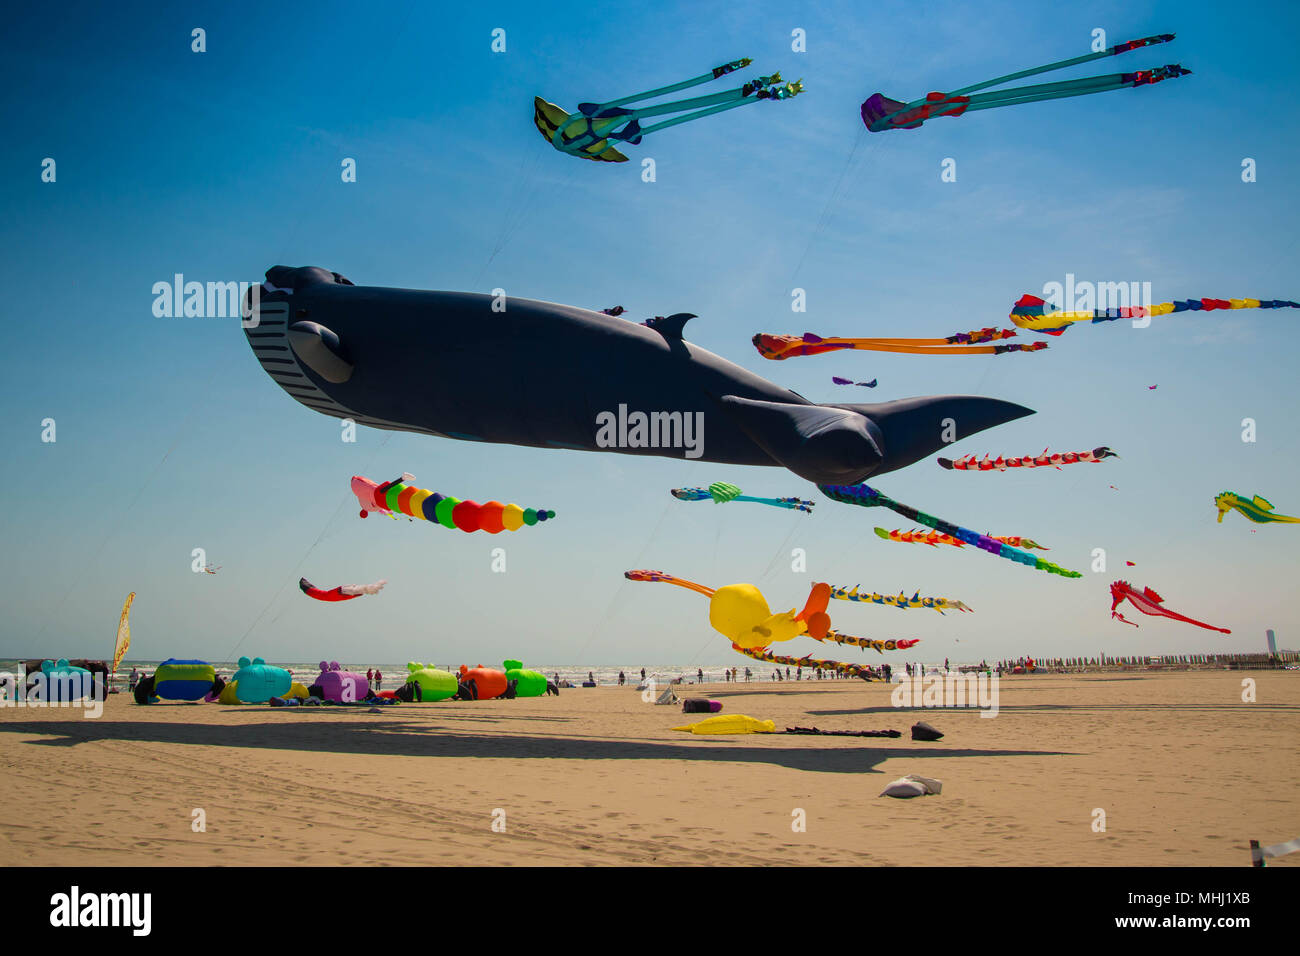 Many colorful kites in different shapes on the beach at Cervia international kite festival 'Artevento' 2018. - Stock Image